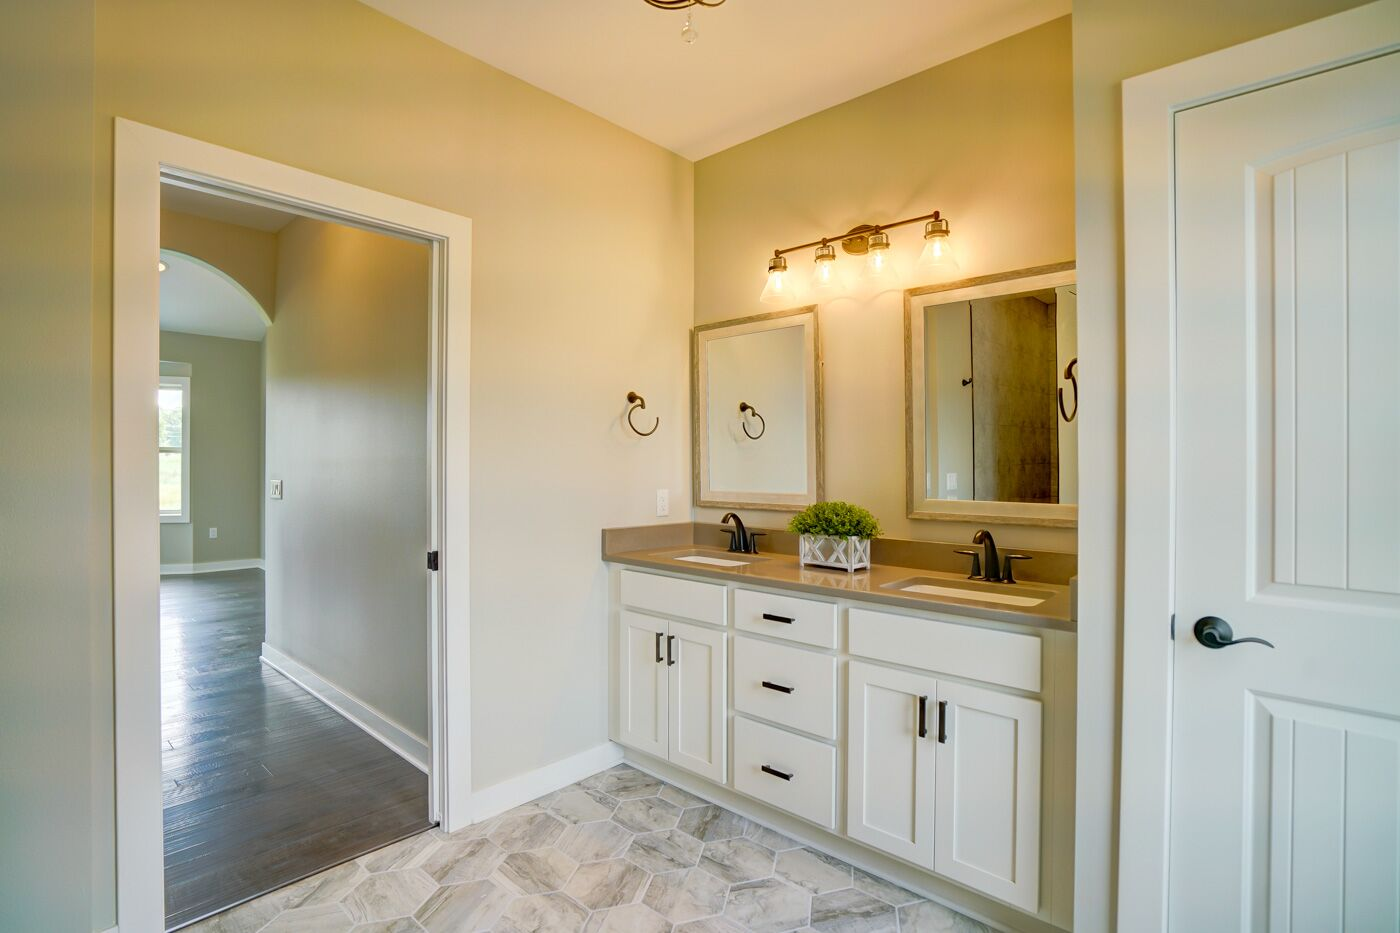 3 Simple Bathroom Remodel Tips that Save Money